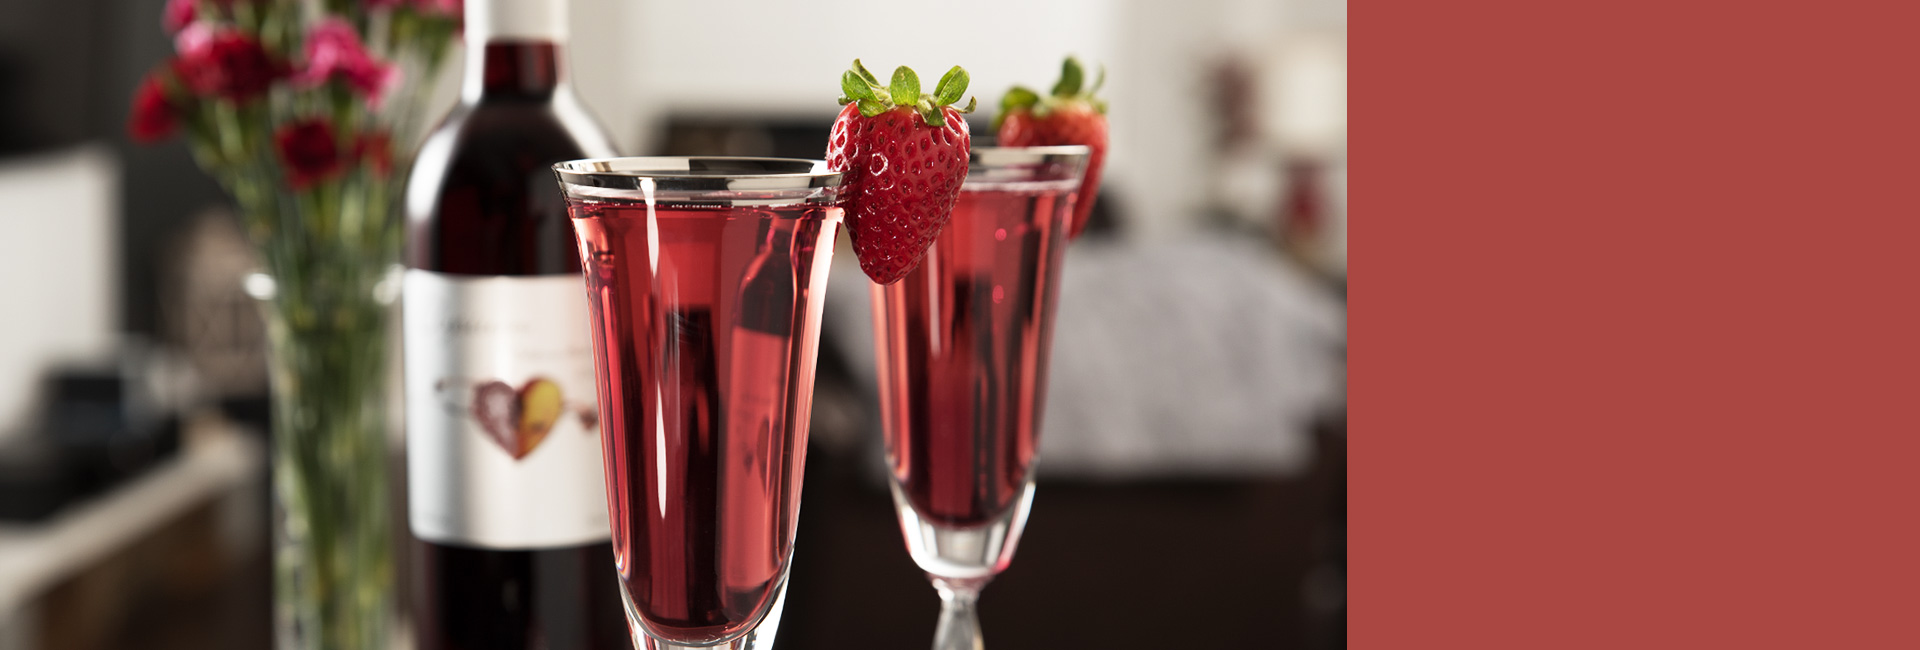 valentines day cocktail recipe with elysium black muscat sweet dessert wine sparkling and strawberries